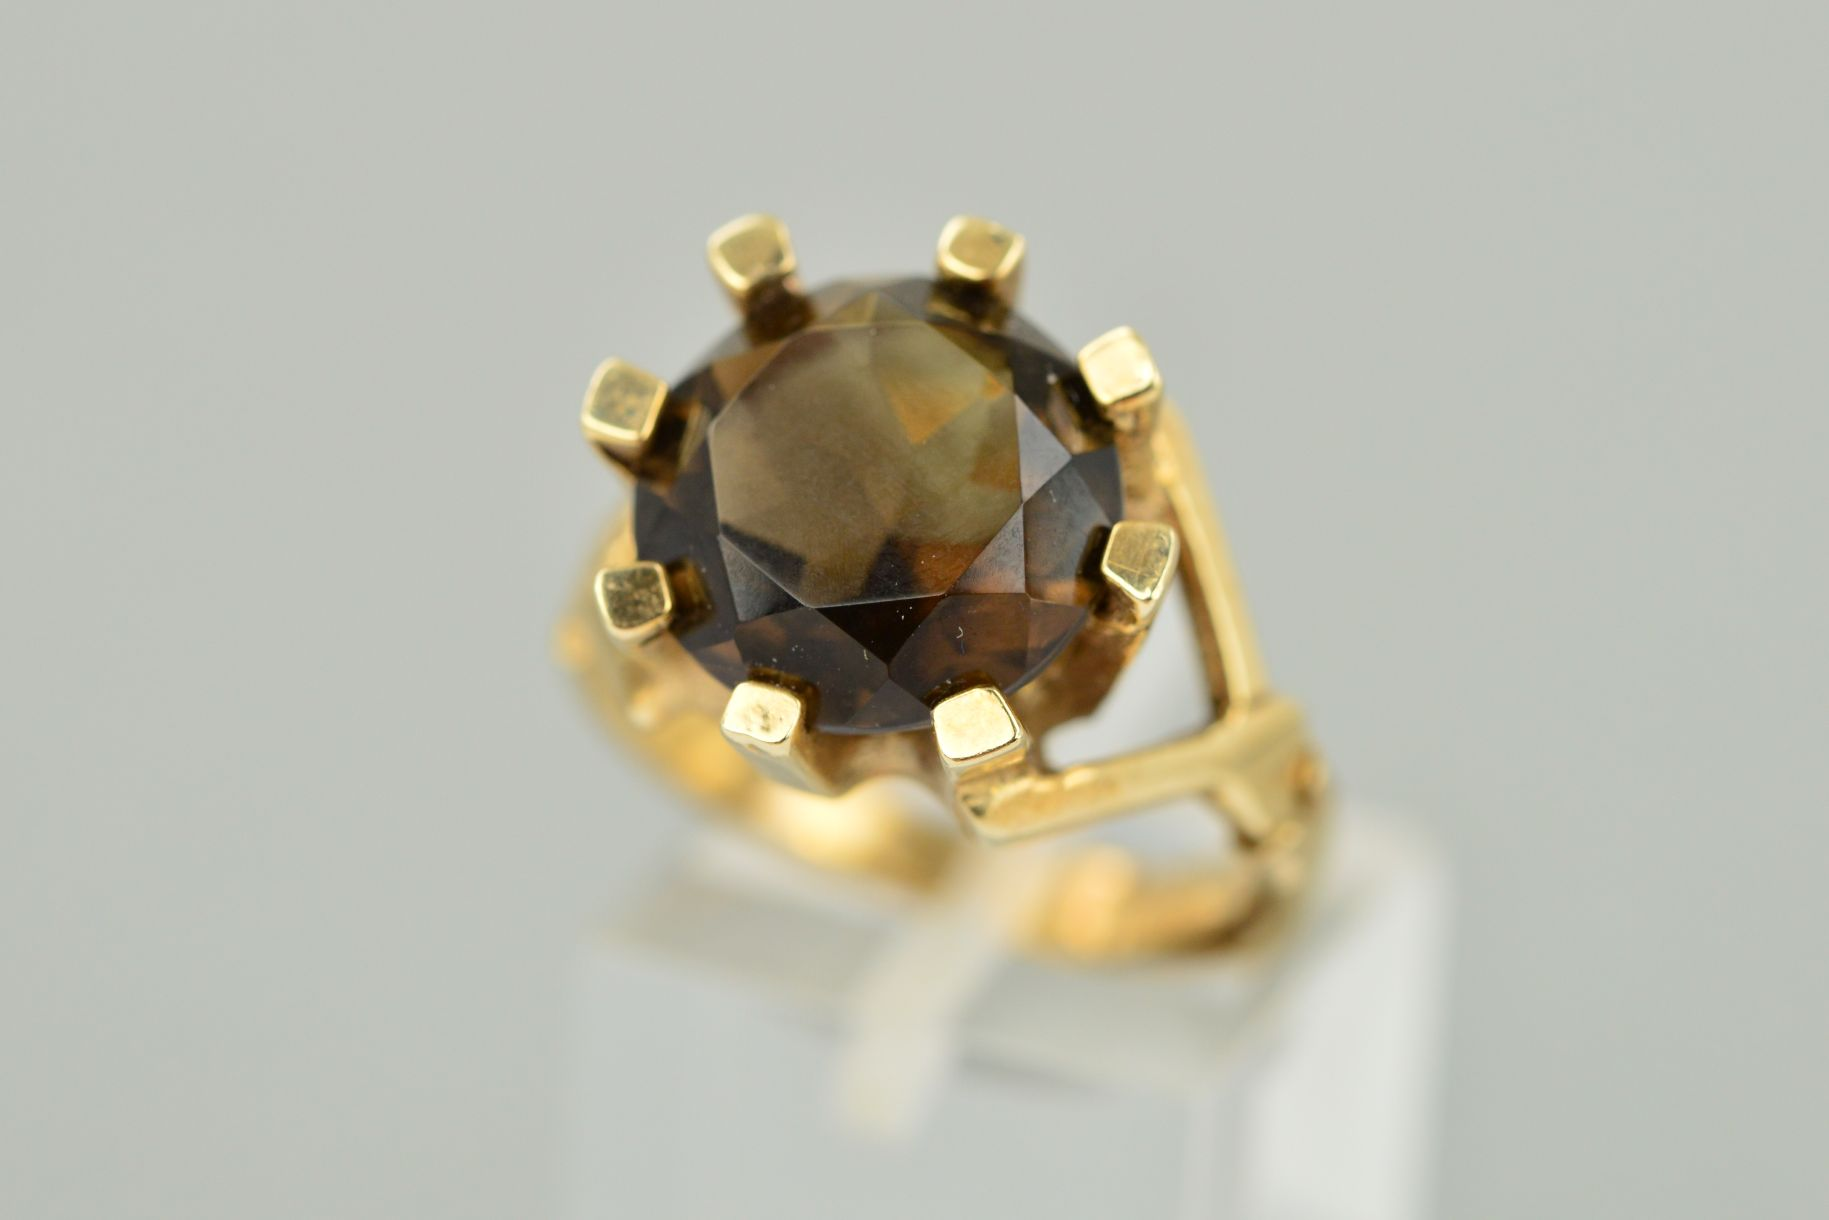 Lot 40 - A 9CT GOLD SMOKY QUARTZ RING, the circular smoky quartz within a thick eight claw setting with a